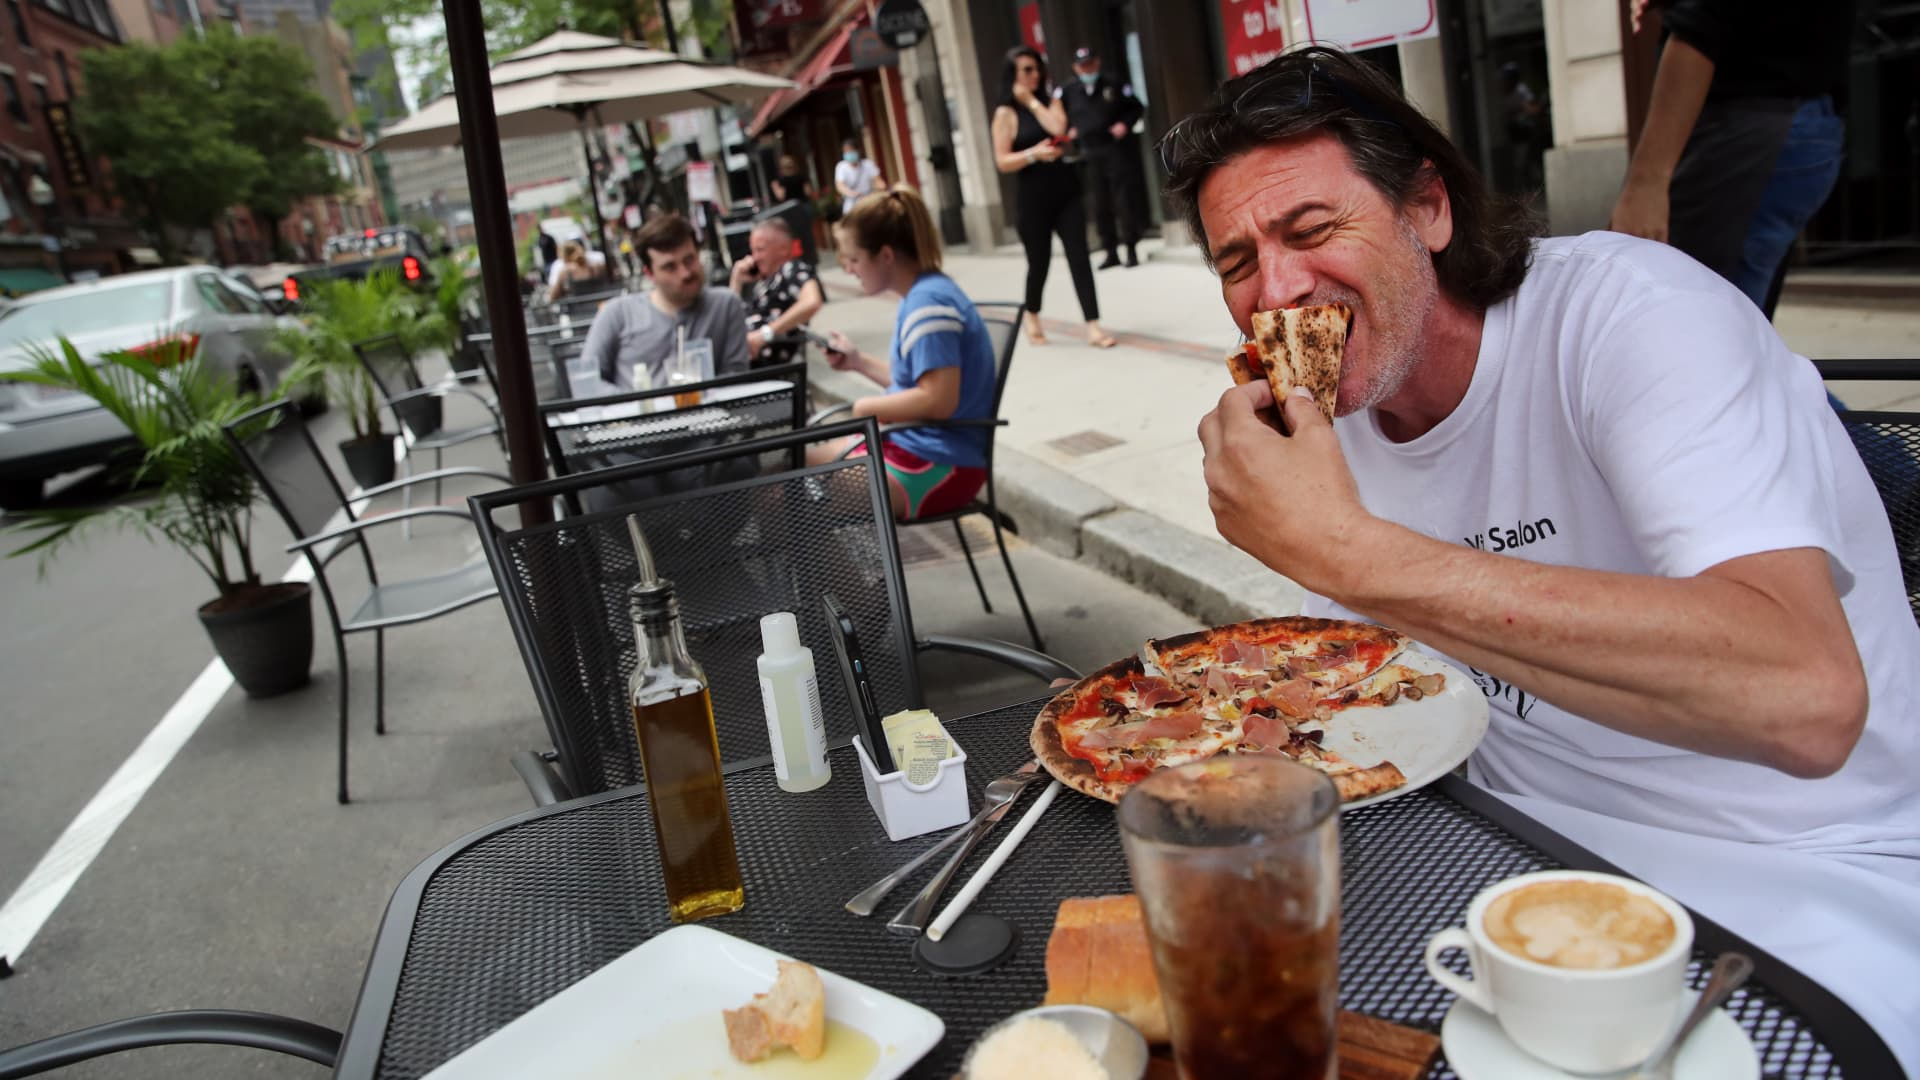 Johnny D'agostina digs into a pizza outside Quattro restaurant on Hanover Street in the North End neighborhood of Boston, MA on June 11, 2020.